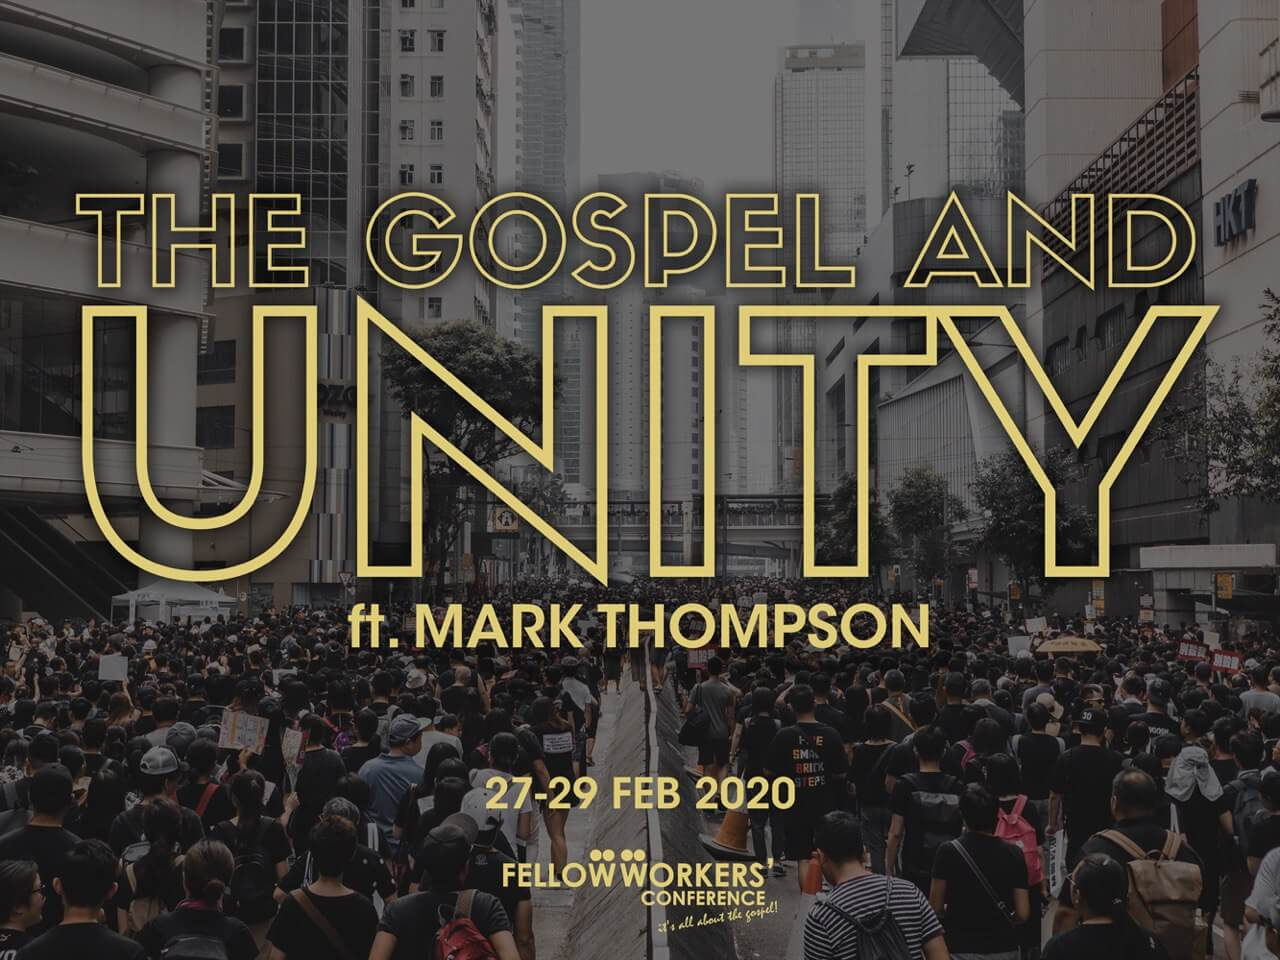 The Gospel and Unity